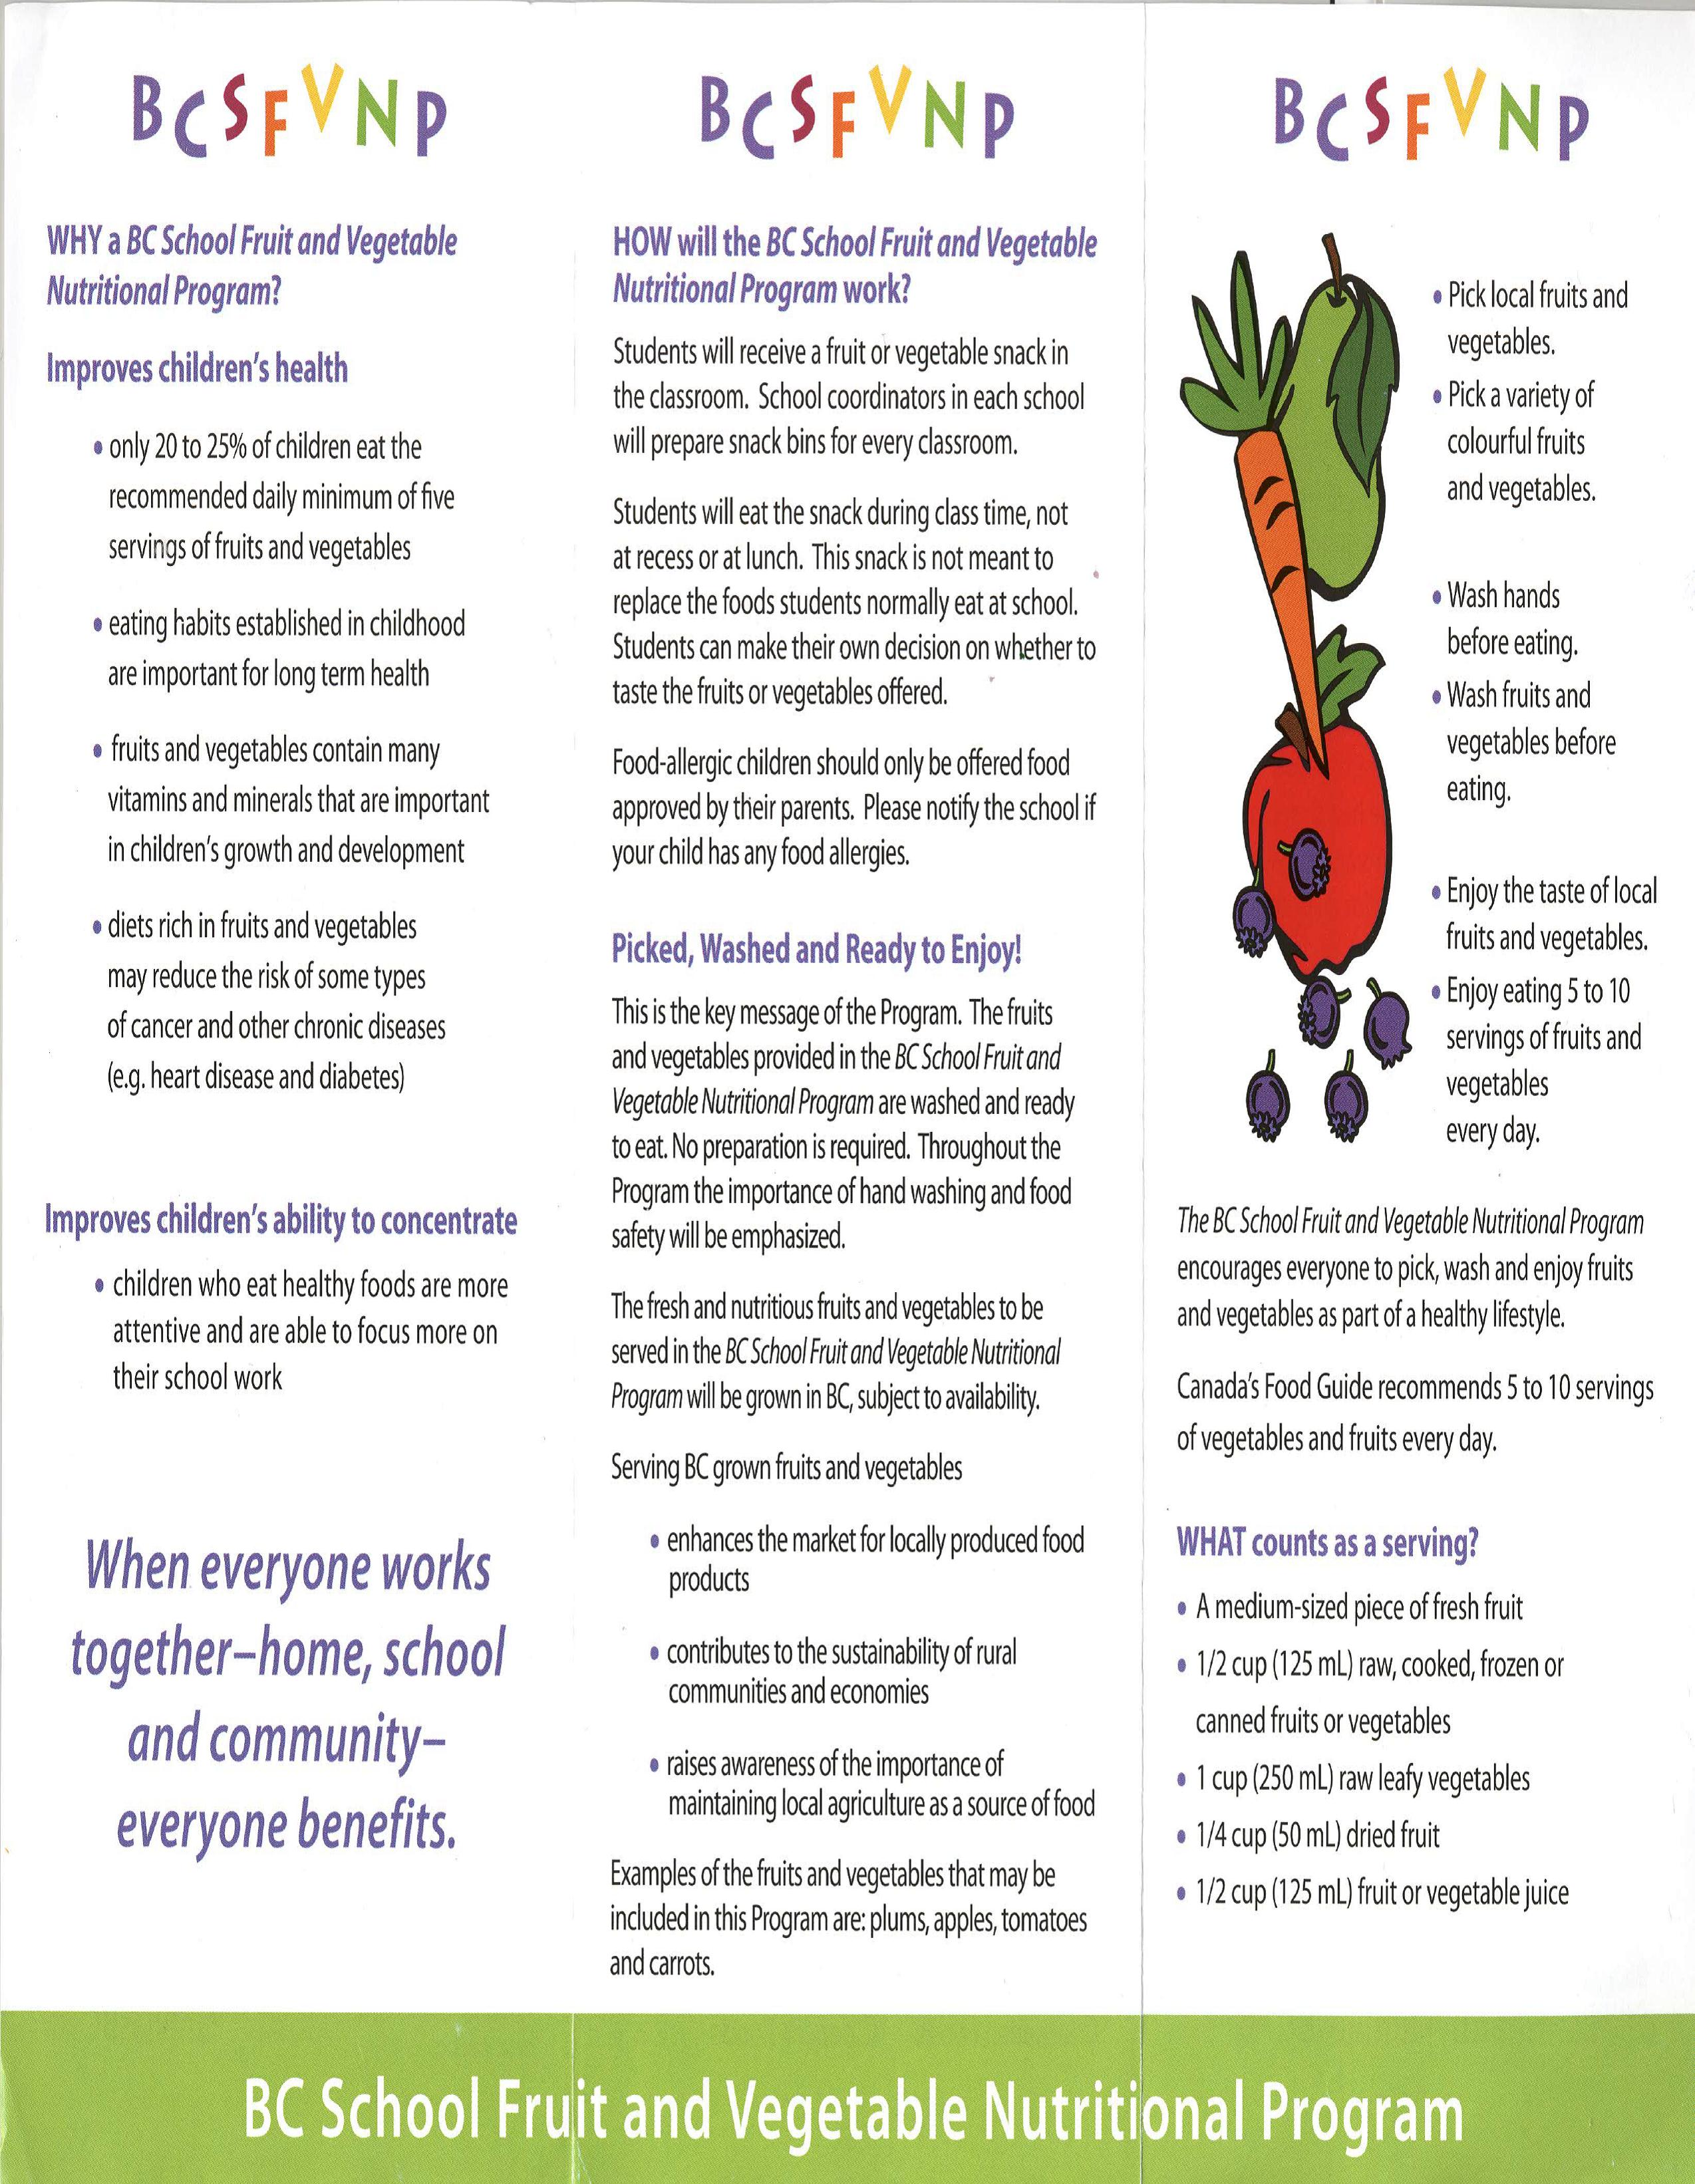 BC School Fruit and Vegetable Program pg 2.jpg